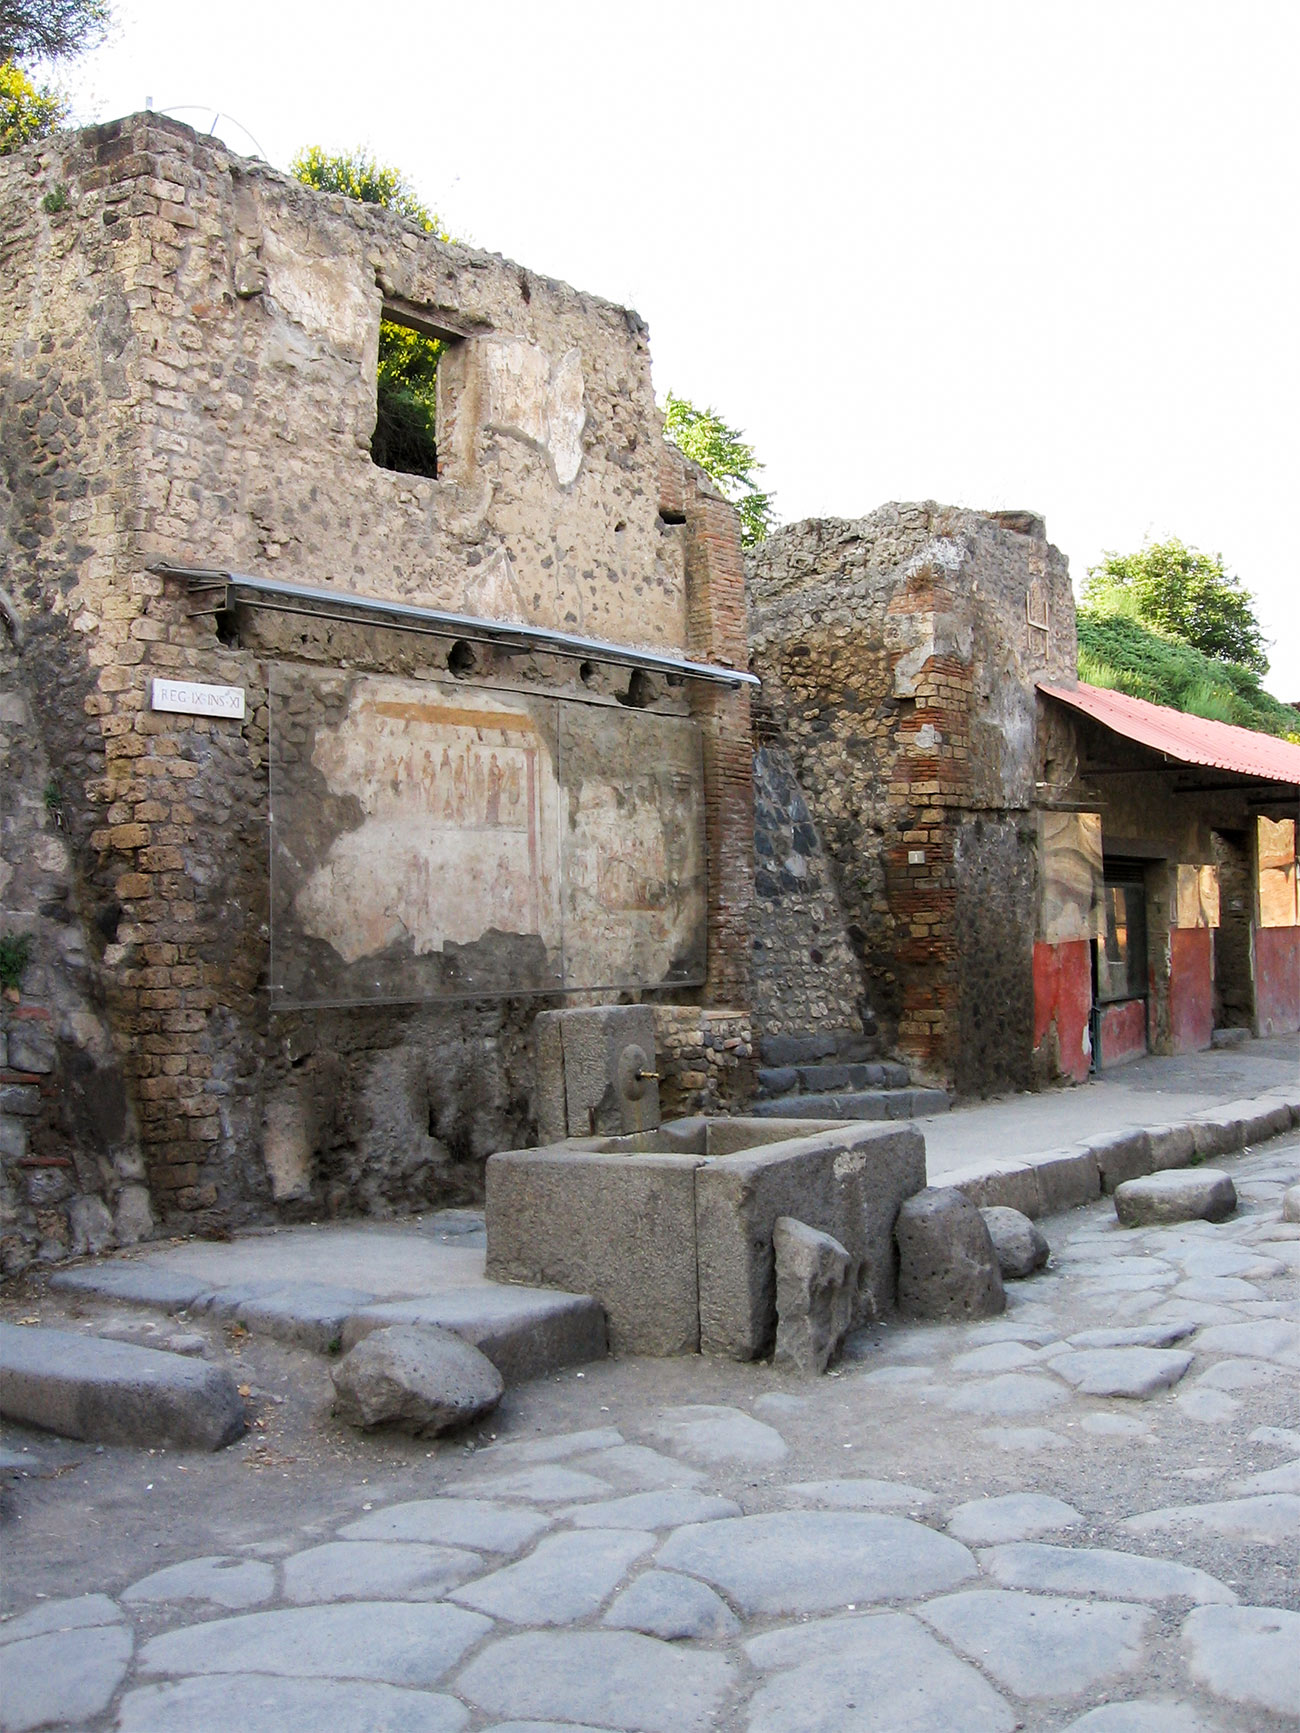 Vertical color photo of ruins from a street in ancient Pompeii showing different types of structures side by side